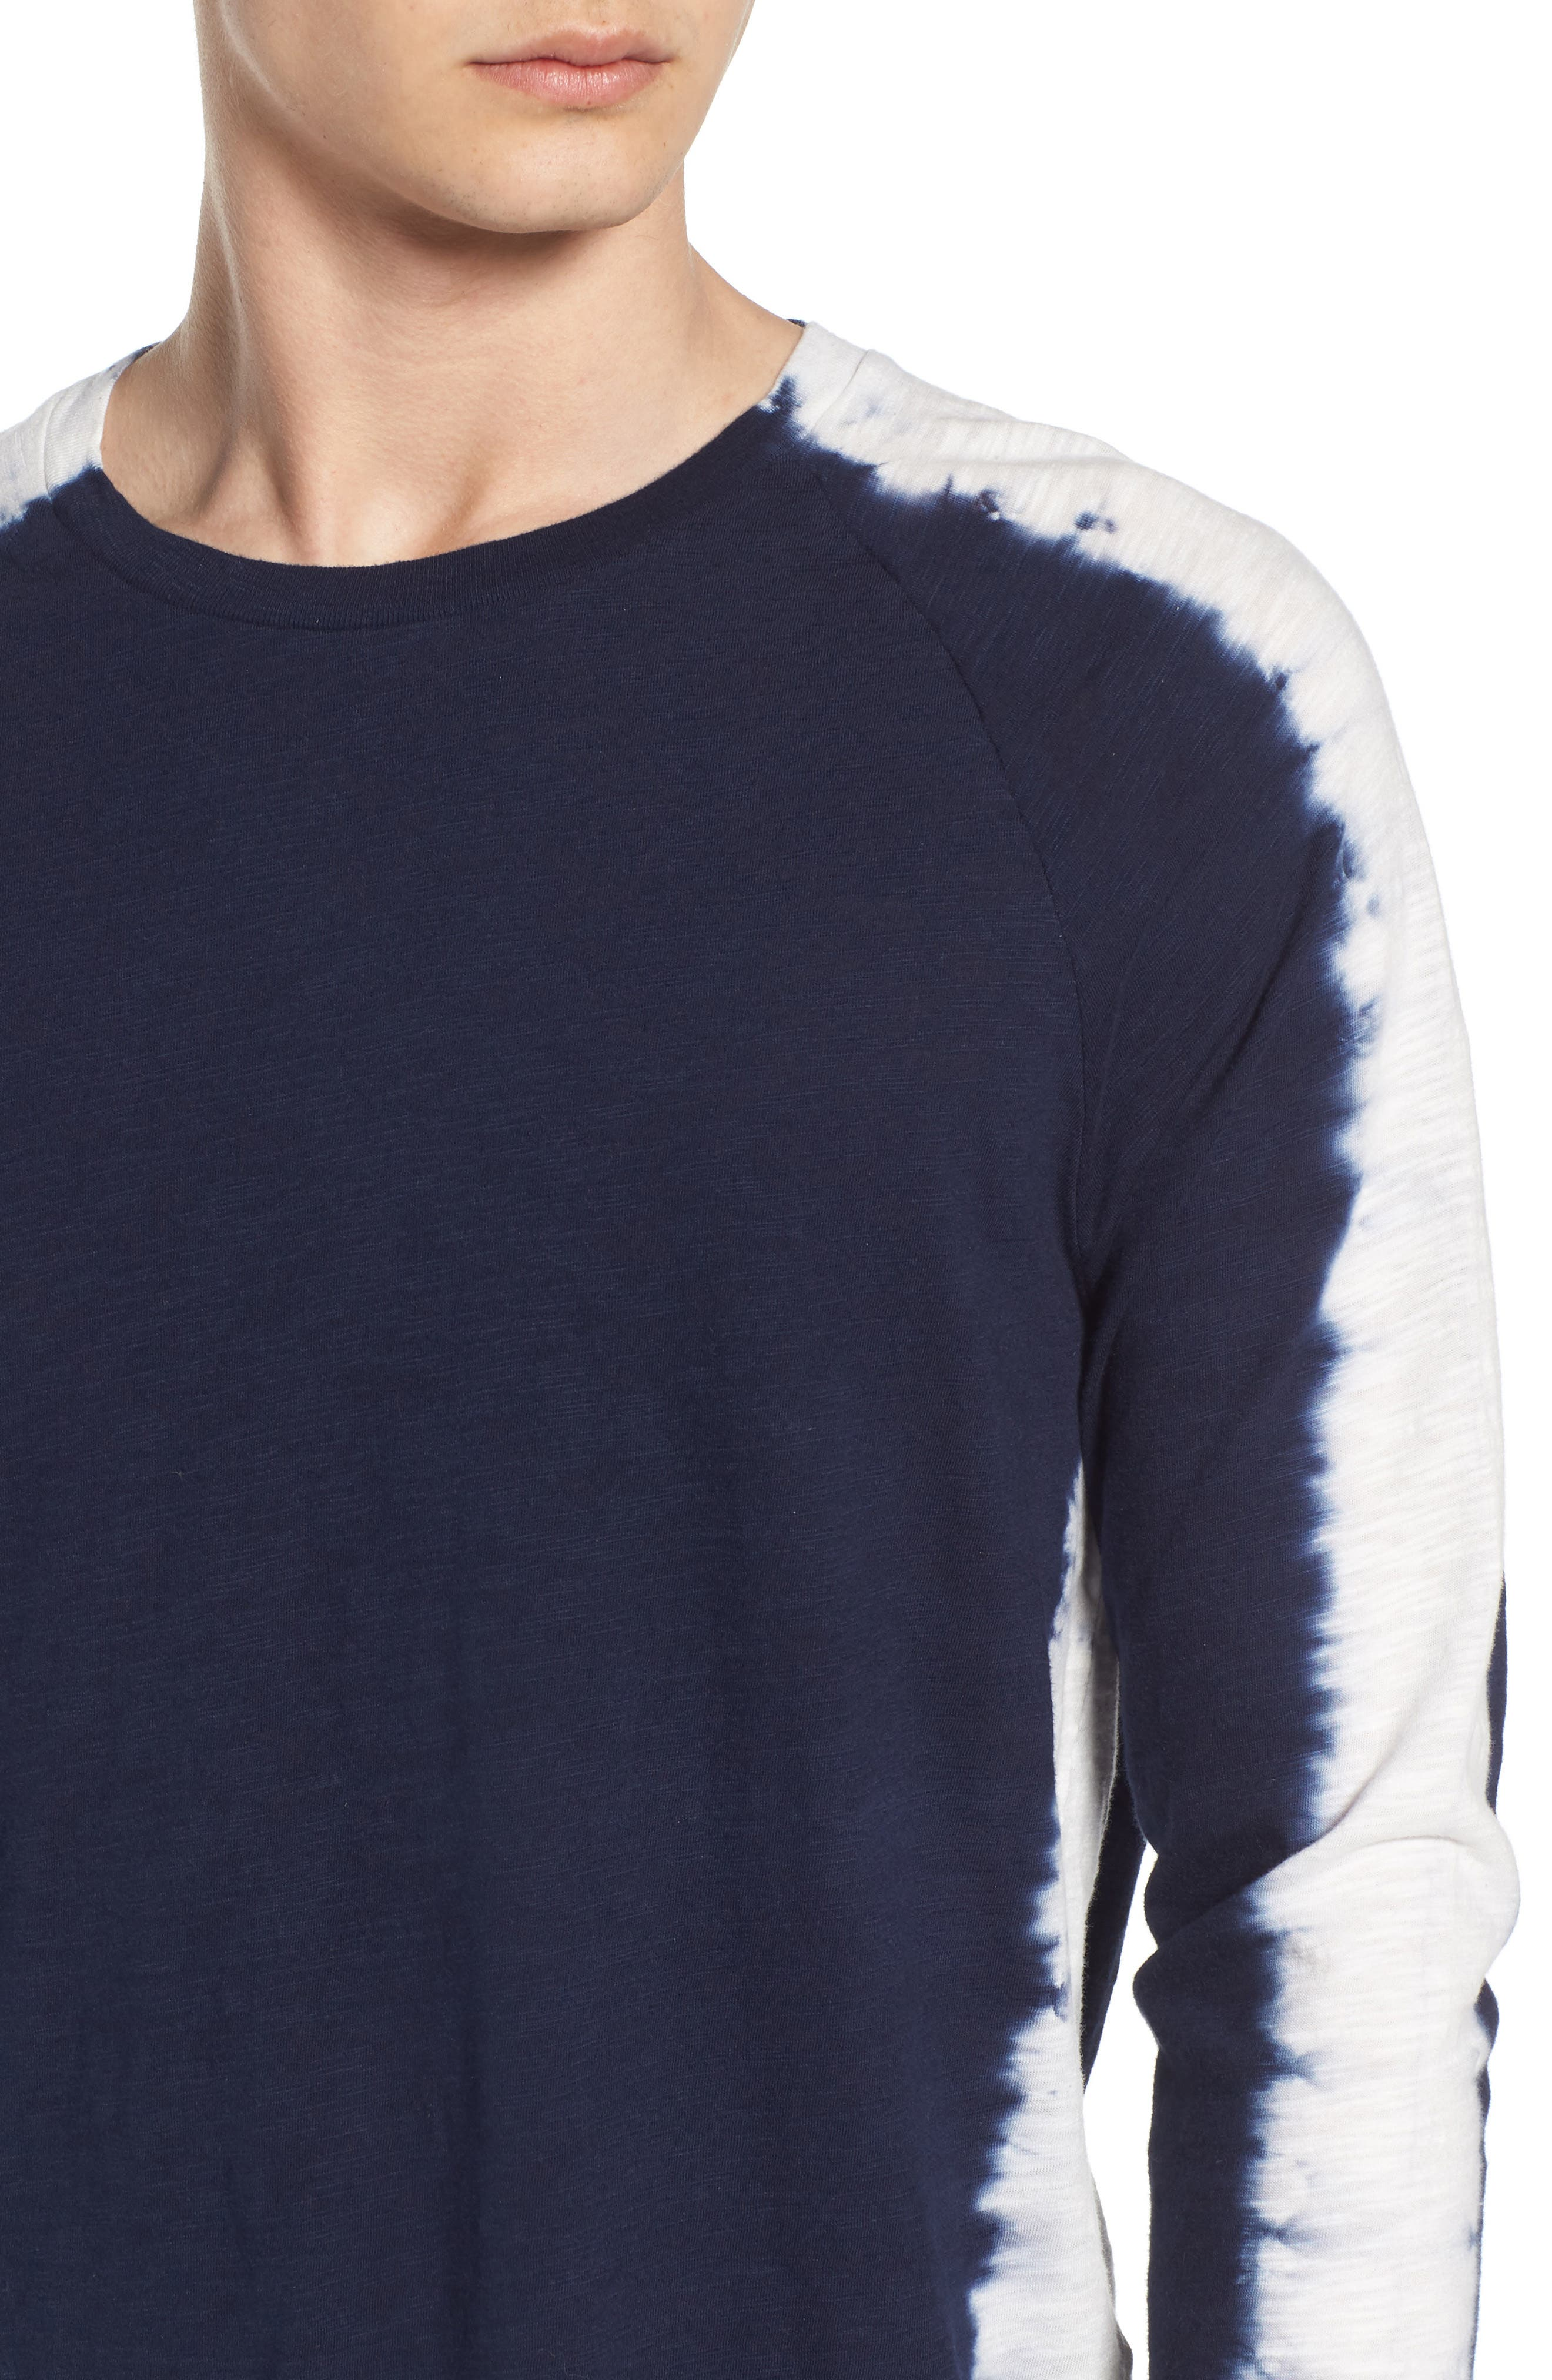 Raglan T-Shirt,                             Alternate thumbnail 4, color,                             INDIGO STRIPE SHIBORI INDIGO